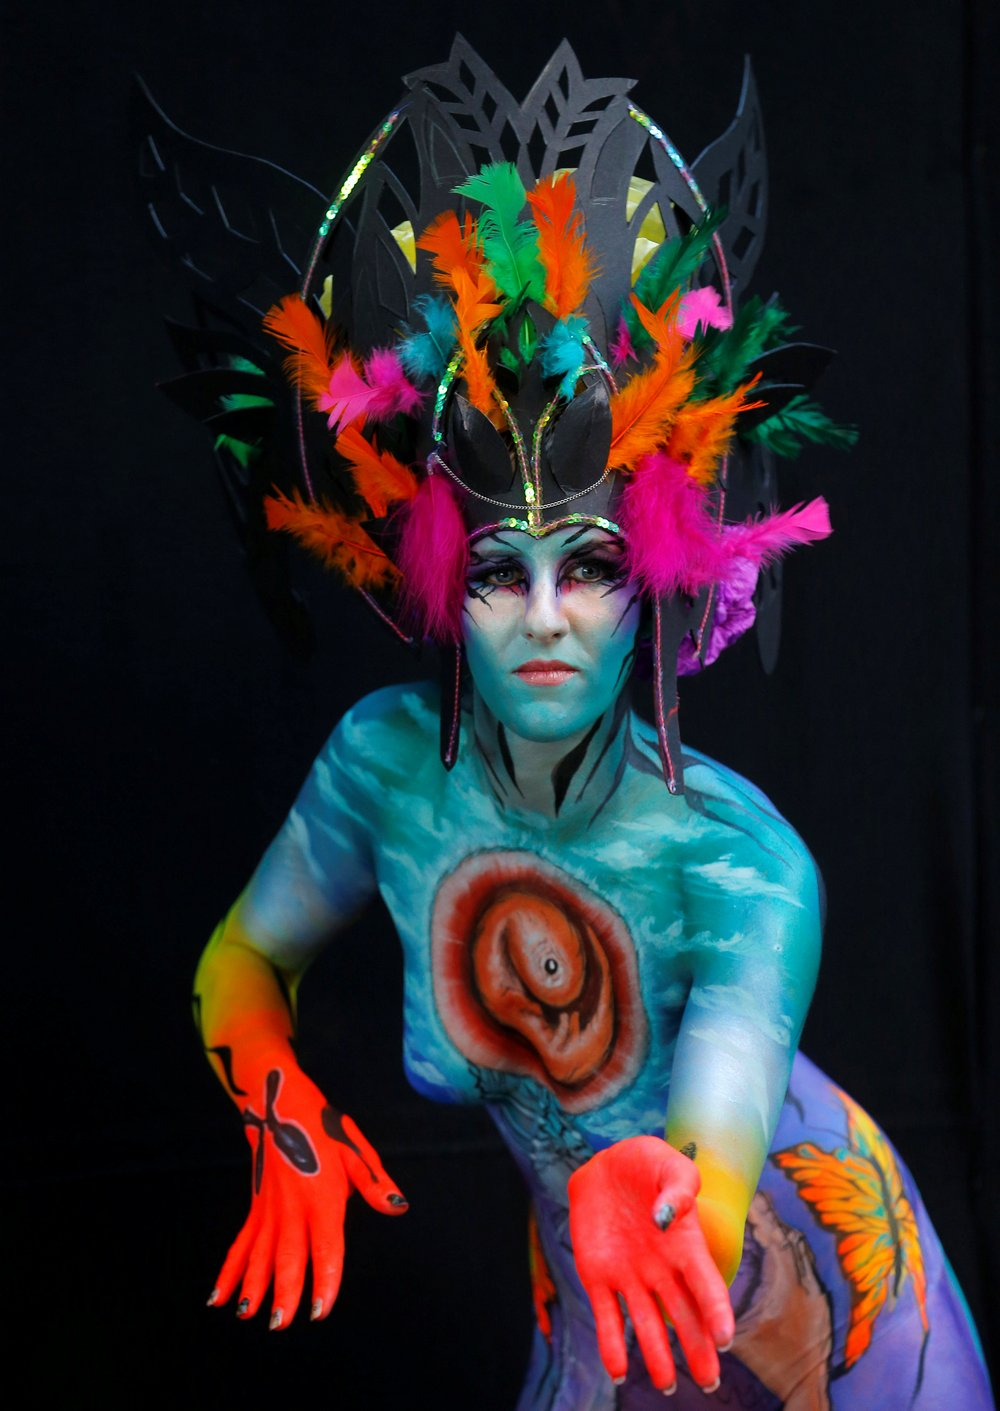 A model poses during the World Bodypainting Festival in Poertschach